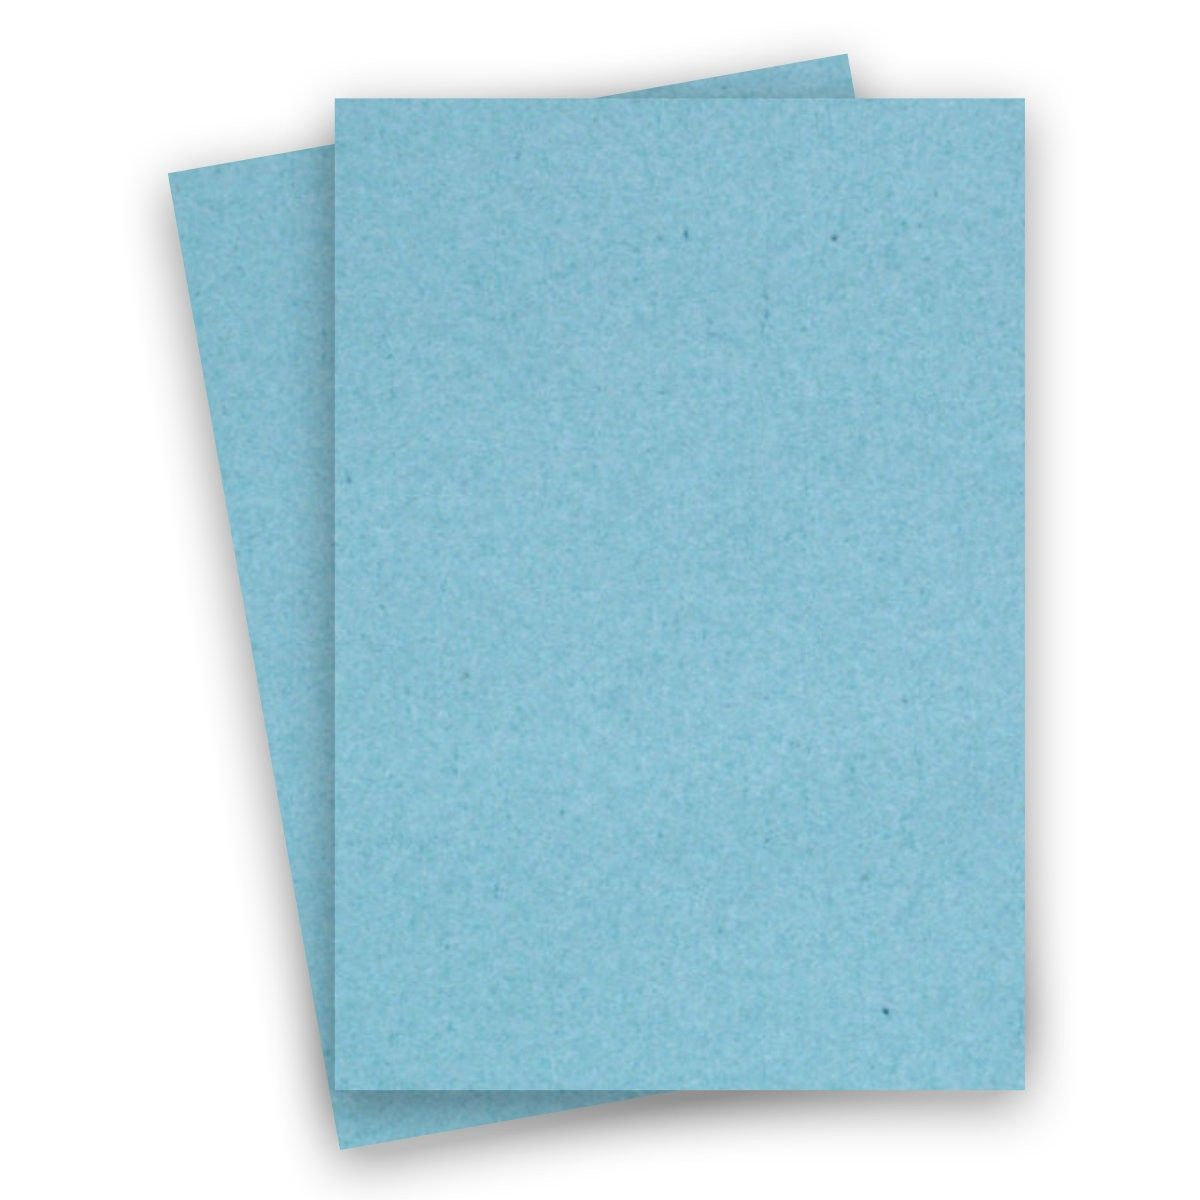 Remake Blue Sky 8 5x14 Card Stock Paper 140lb Cover 380gsm